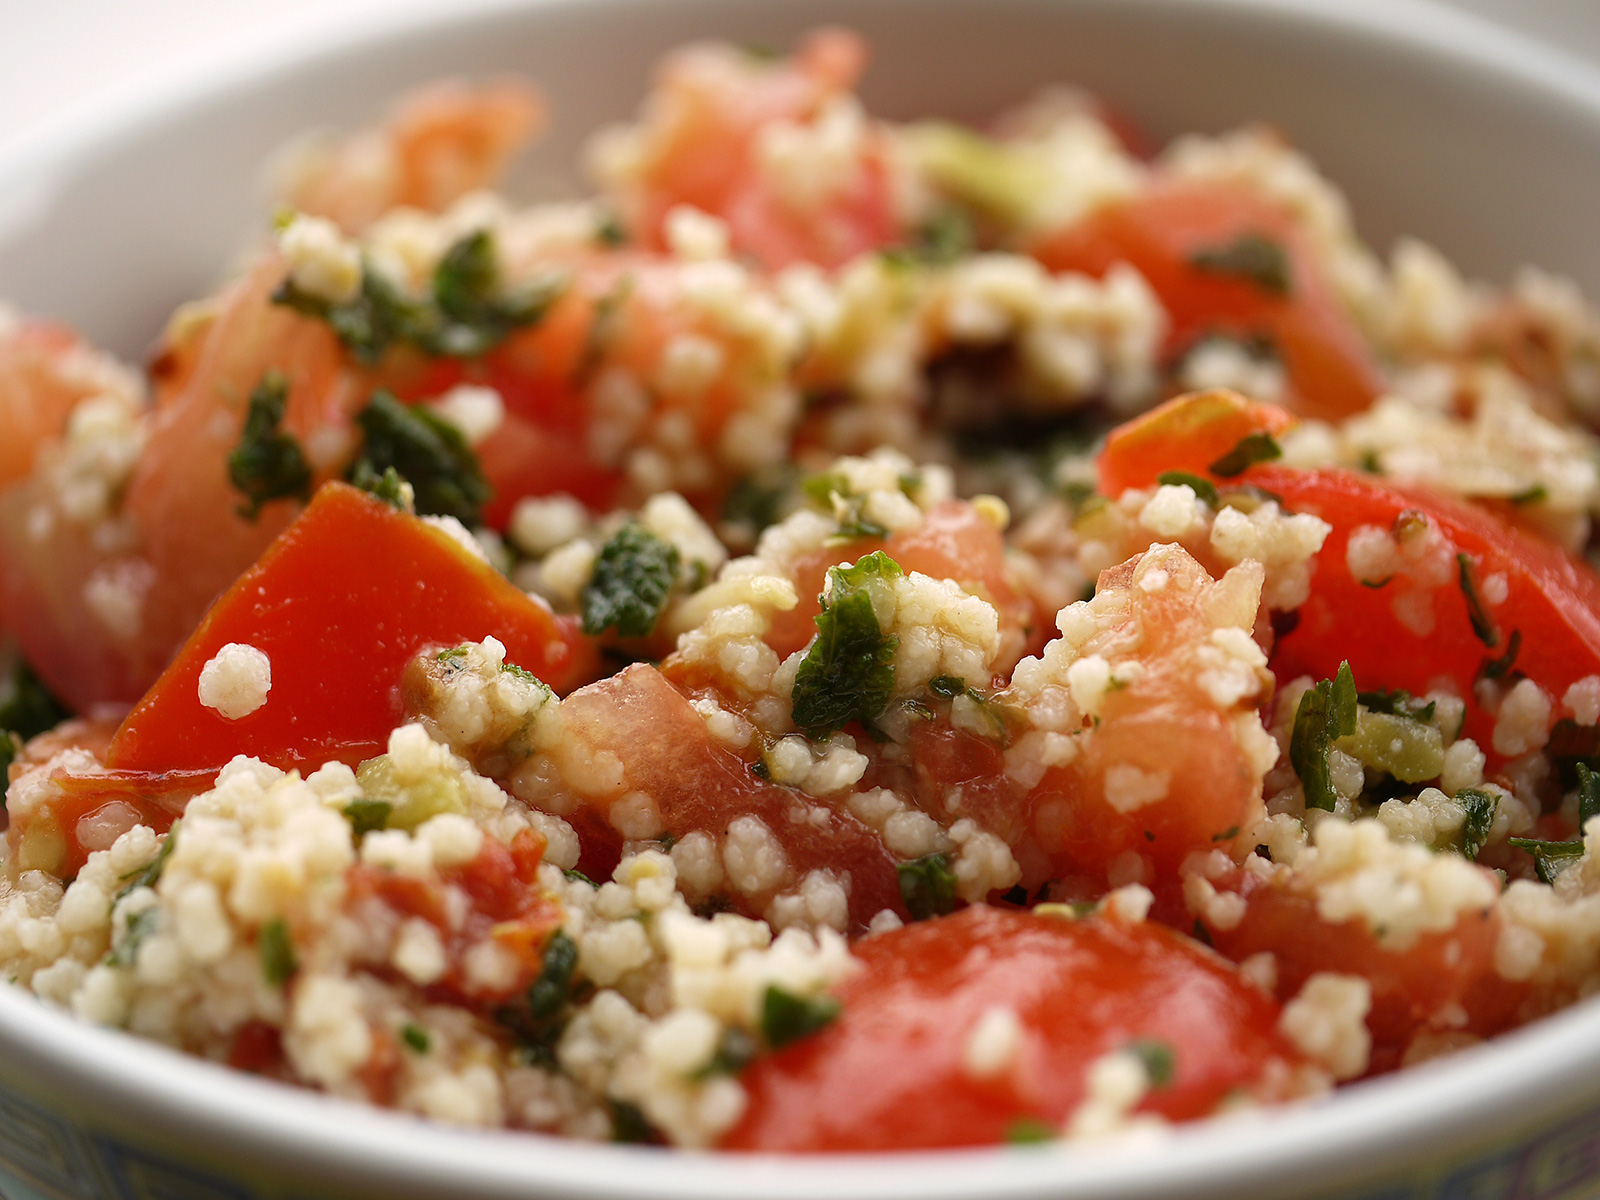 Tabbouleh with Strawberry Vinaigrette Dressing, Tabulè con Condimento Balsamico alla Fragola